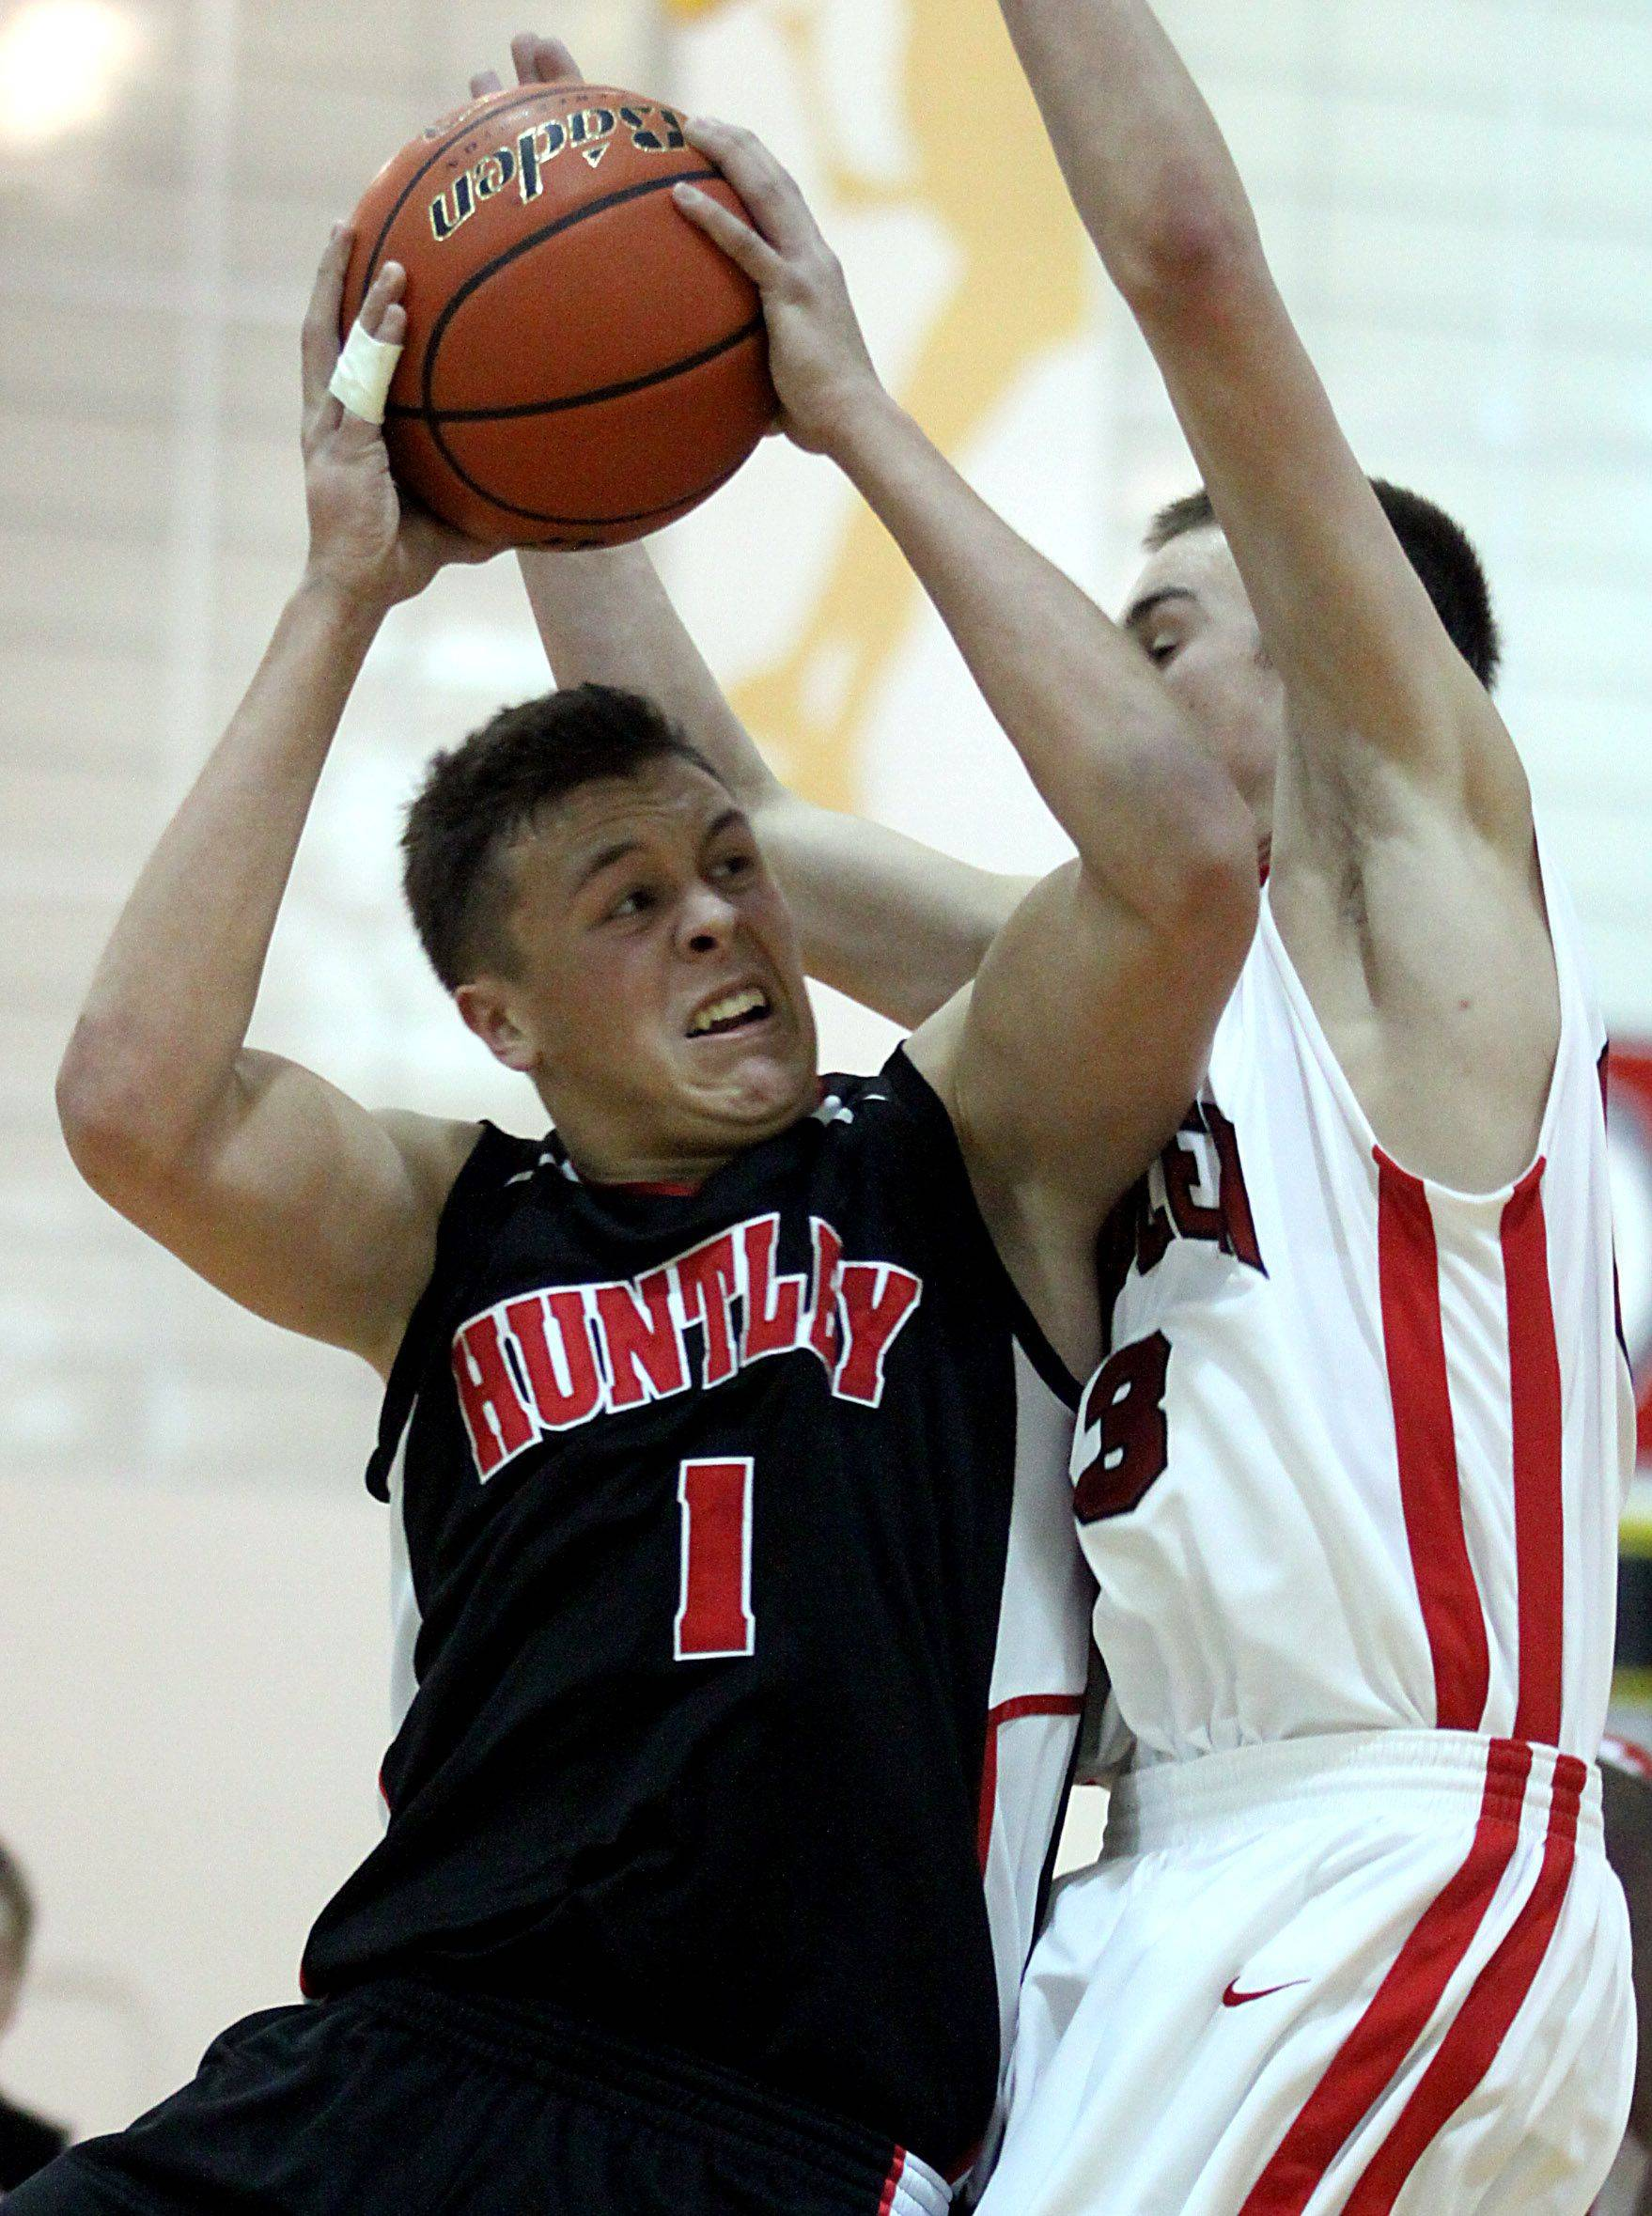 Dylan Neukirch of Huntley goes to the hoop against Mundelein during the title game of the Jacobs Holiday Classic Boys Basketball Tournament in Algonquin on Thursday night.